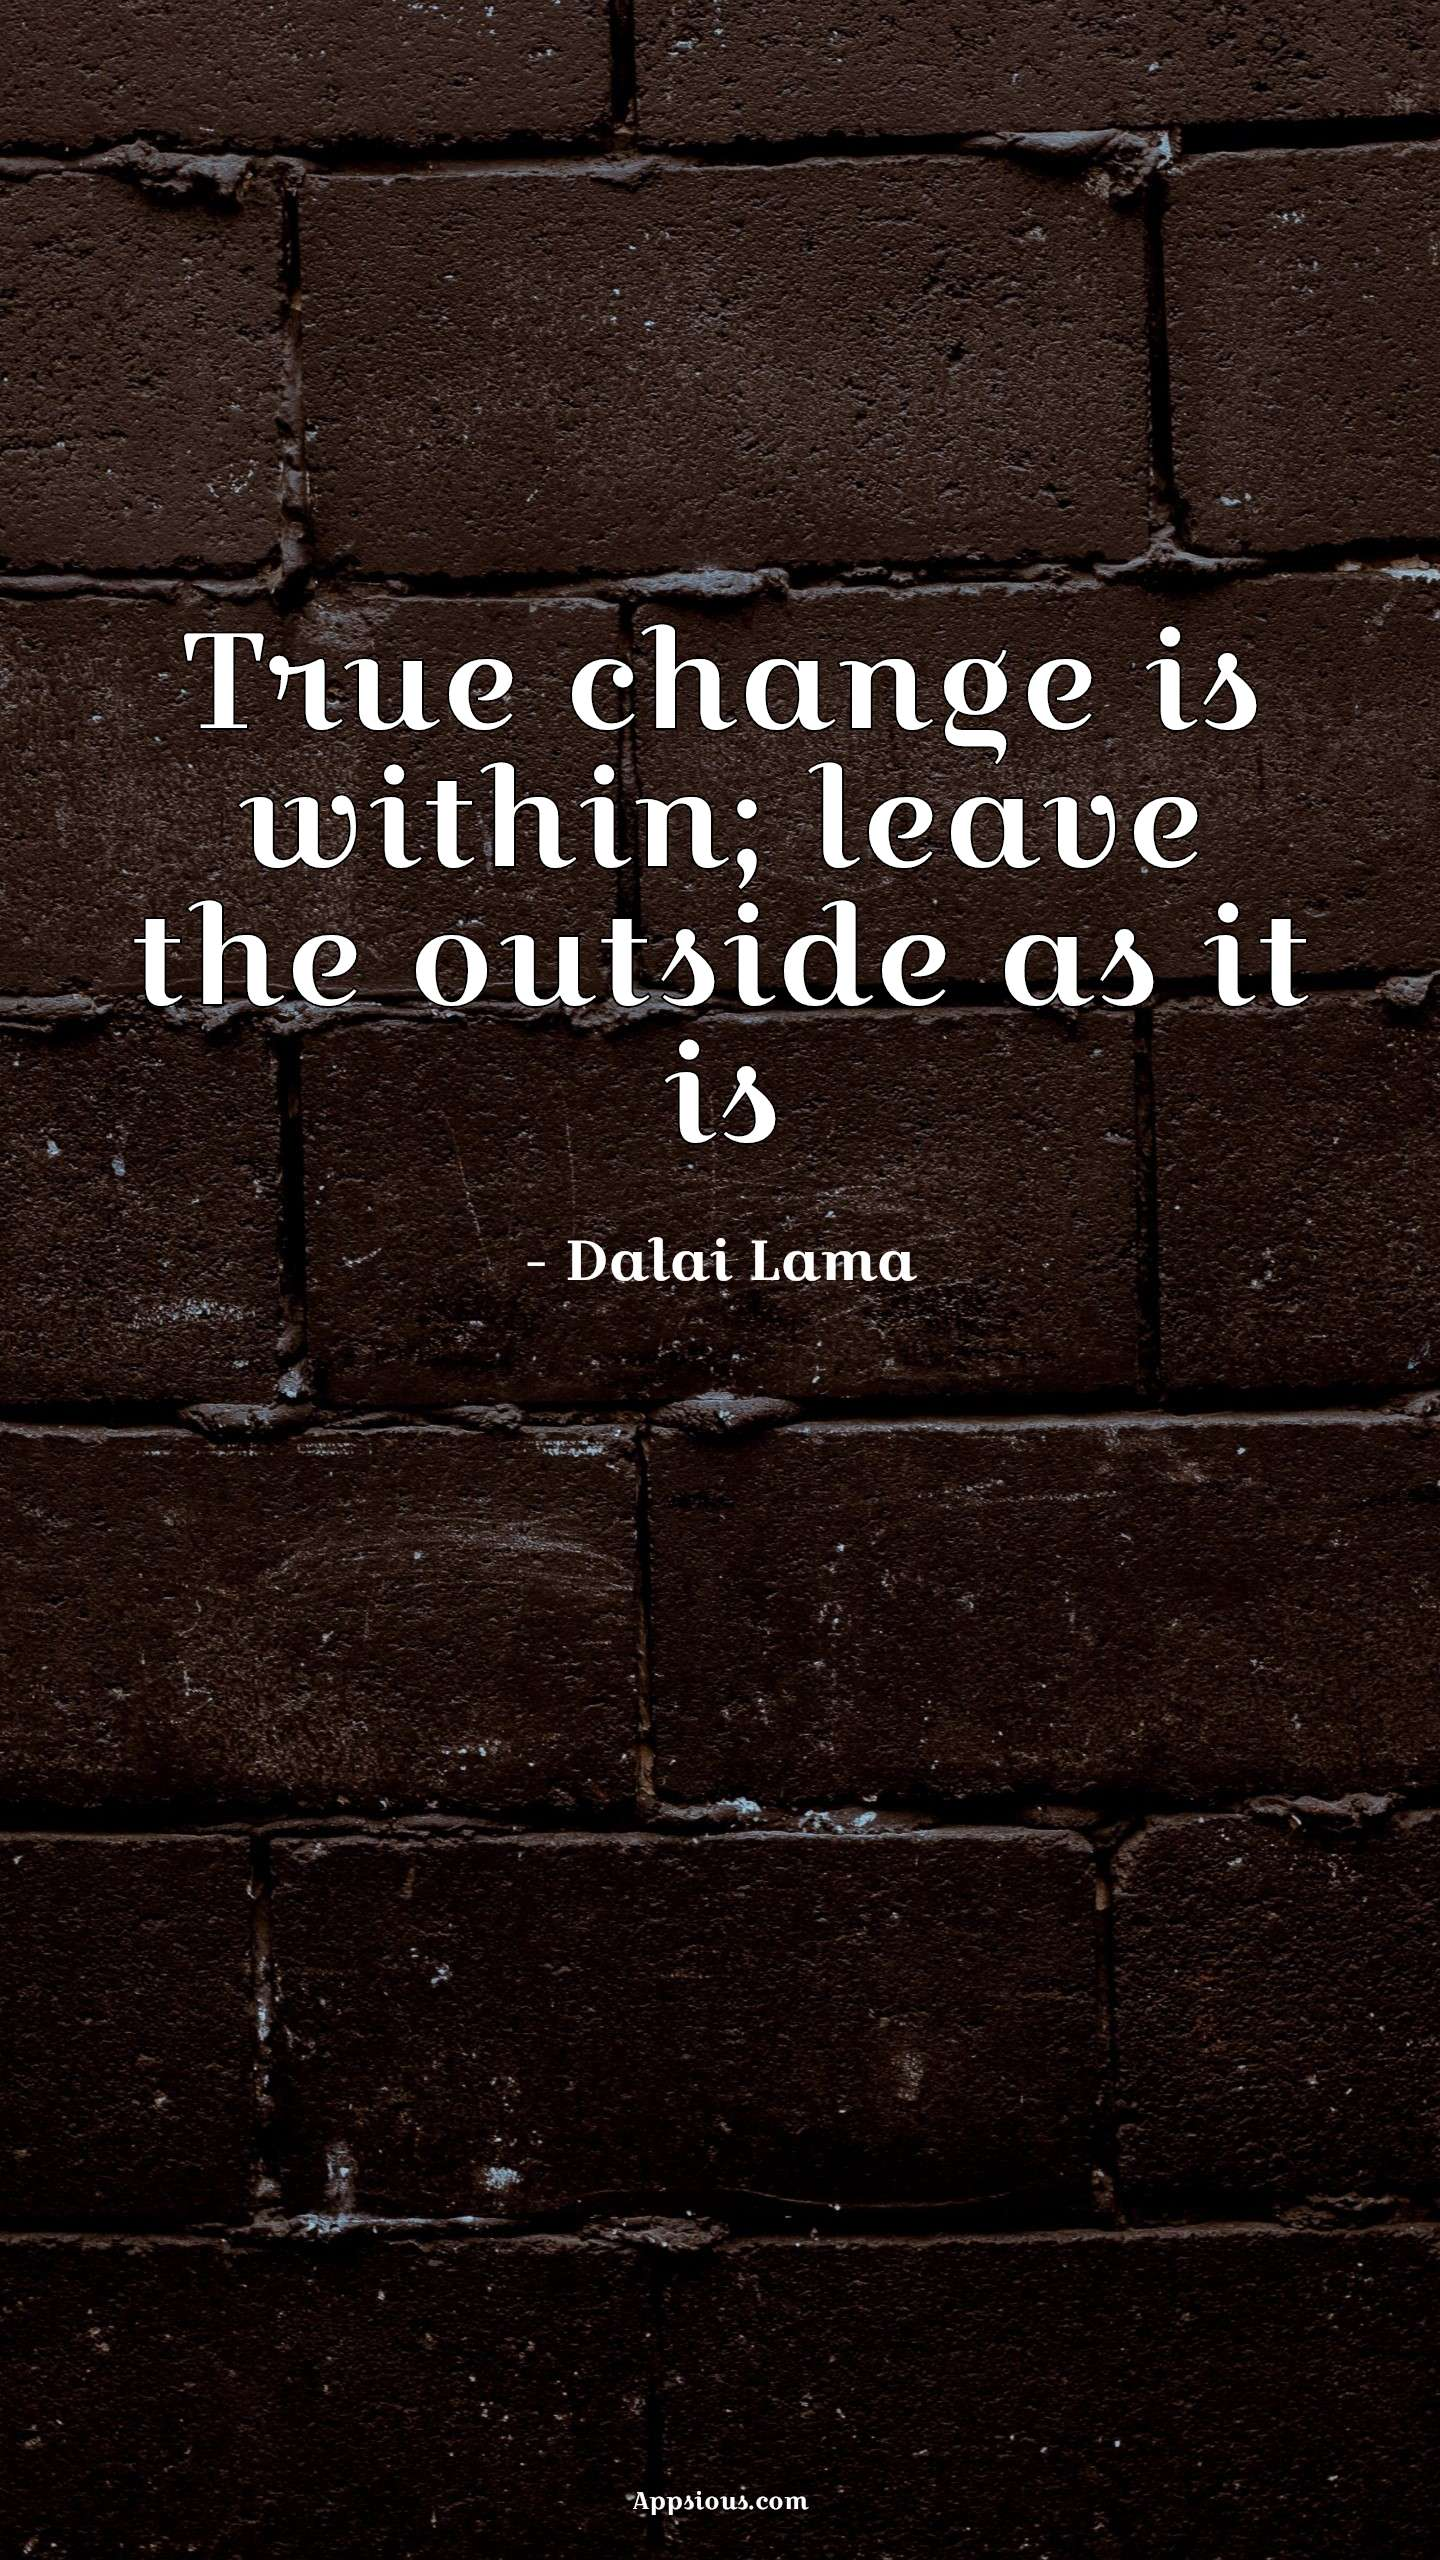 True change is within; leave the outside as it is